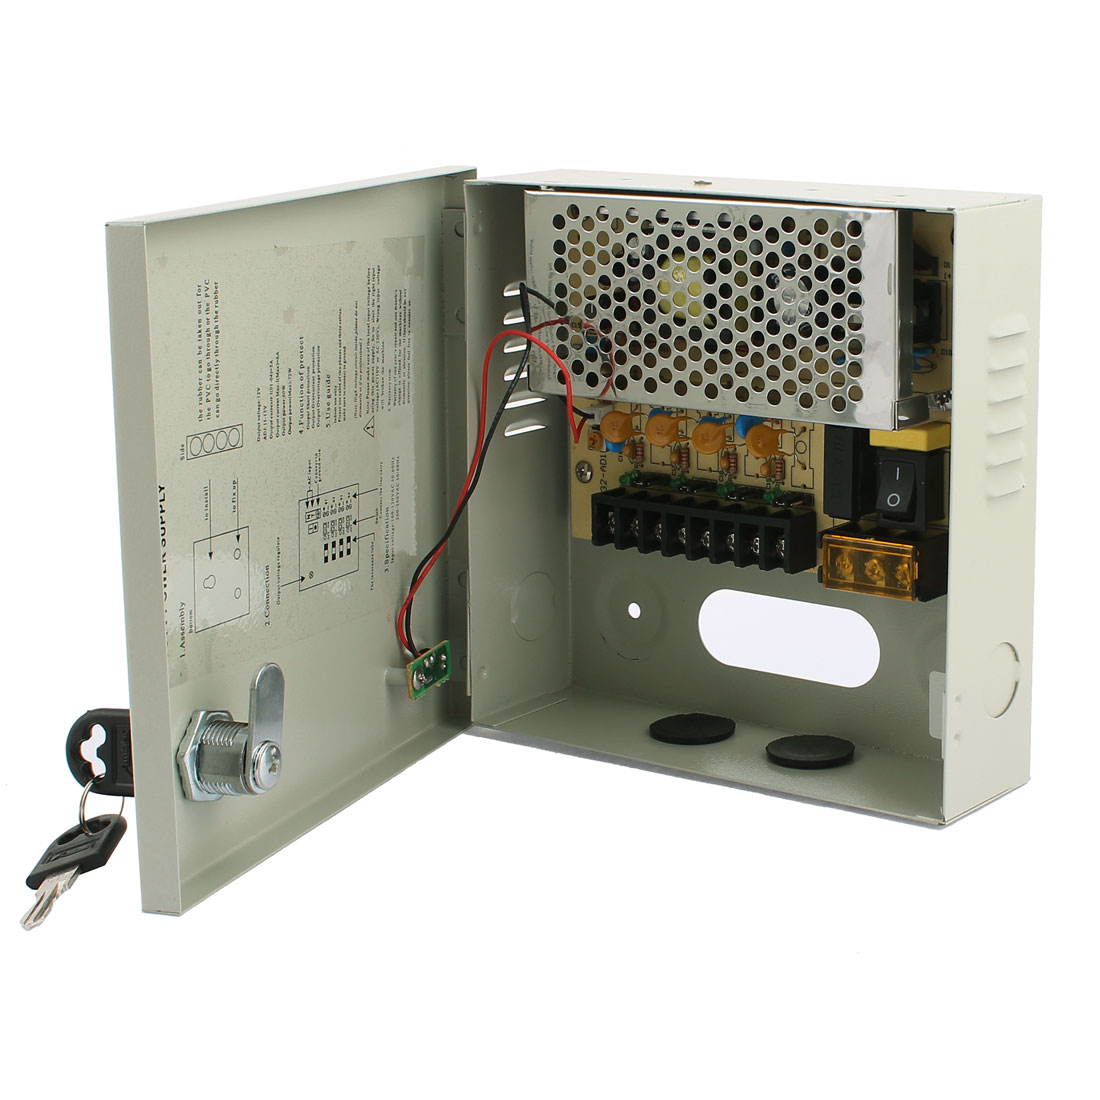 AC 100-240V to DC 12V 5A 4 CH Switching Power Supply Switch Box for CCTV Camera